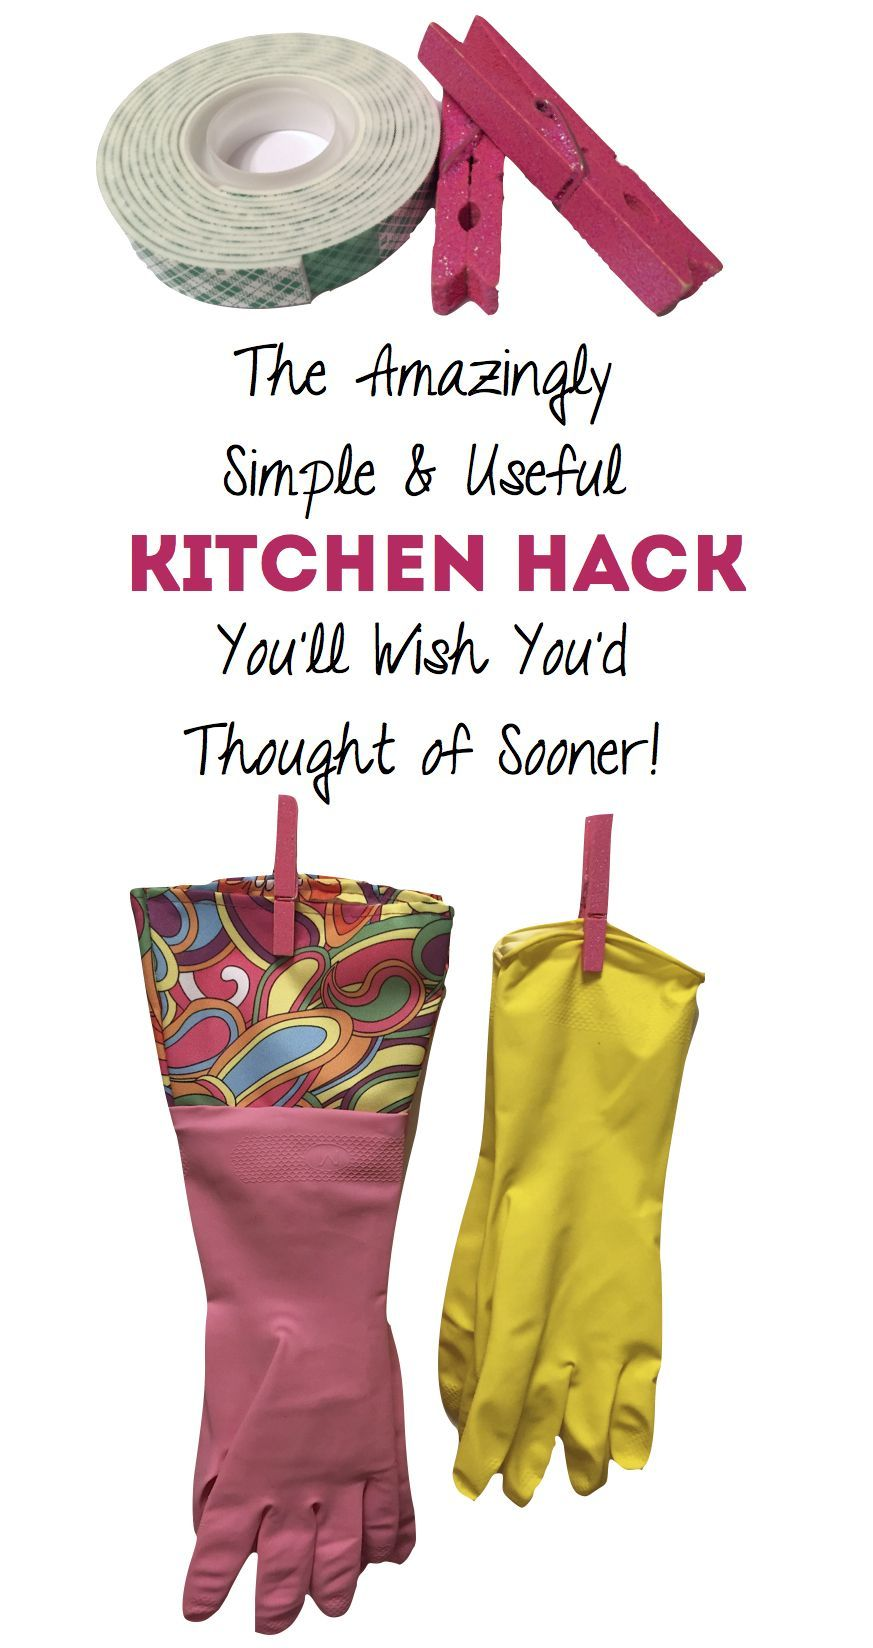 Amazing Clothespin Hack I Wish I'd Found Years Ago This super-simple kitchen hack eliminated one of my biggest pet peeves! Easy DIY photo tutorialThis super-simple kitchen hack eliminated one of my biggest pet peeves! Easy DIY photo tutorial